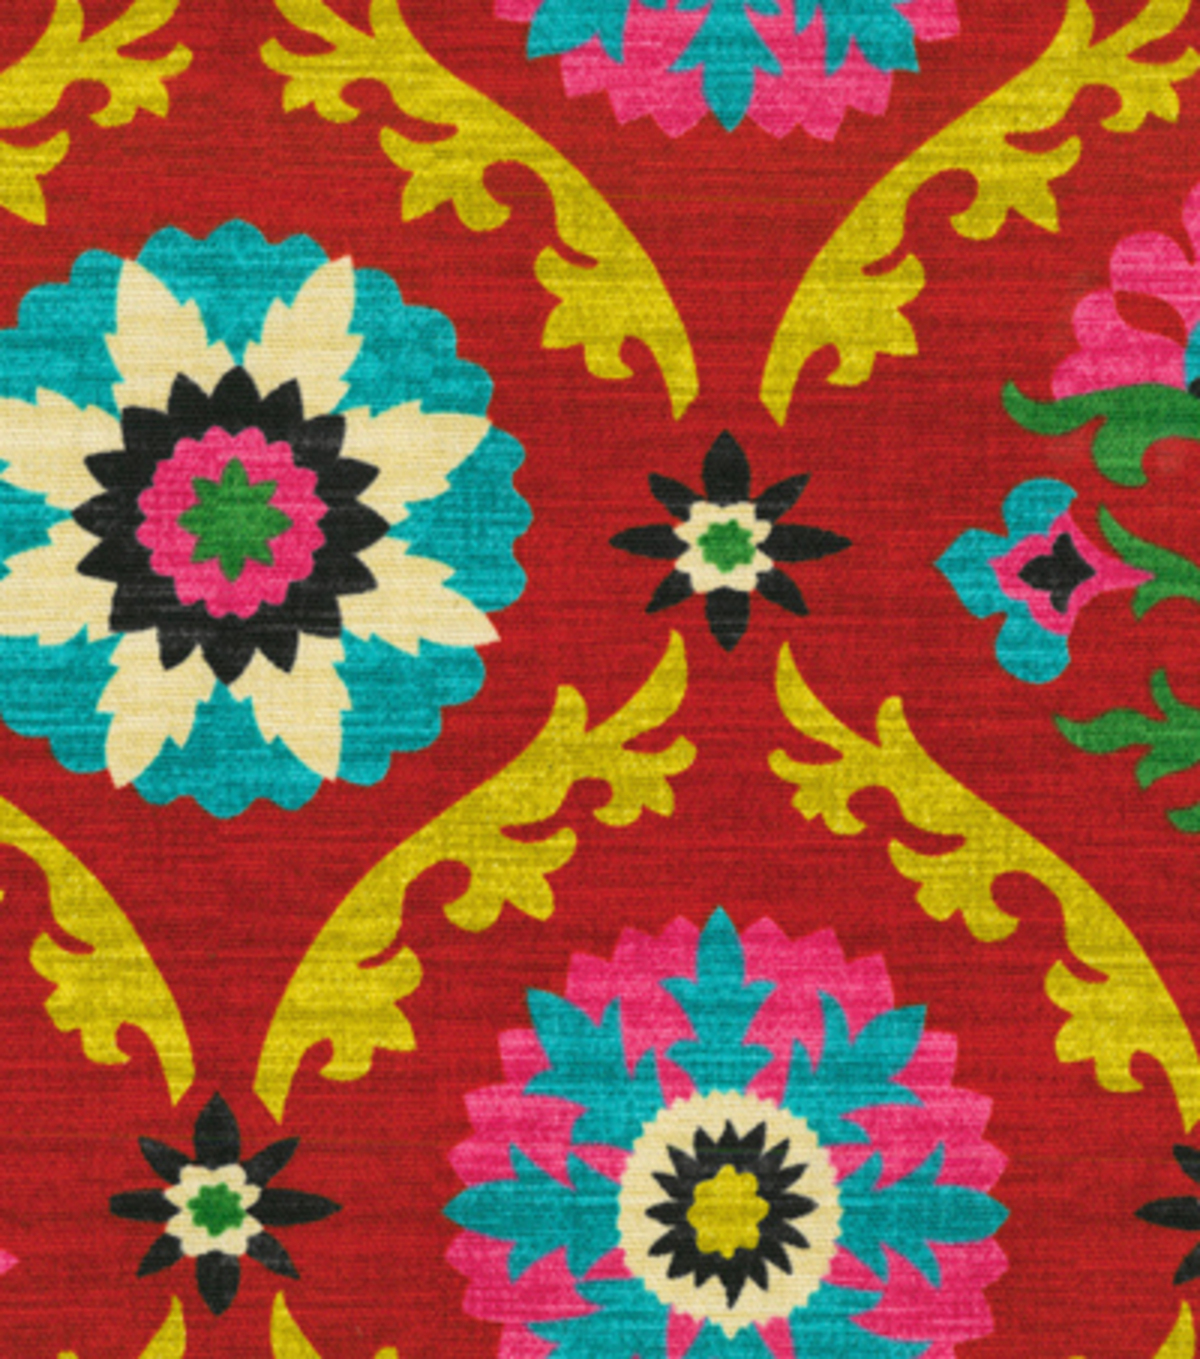 Home Decor 8\u0022x8\u0022 Fabric Swatch-Waverly Mayan Medallion Desert Flower